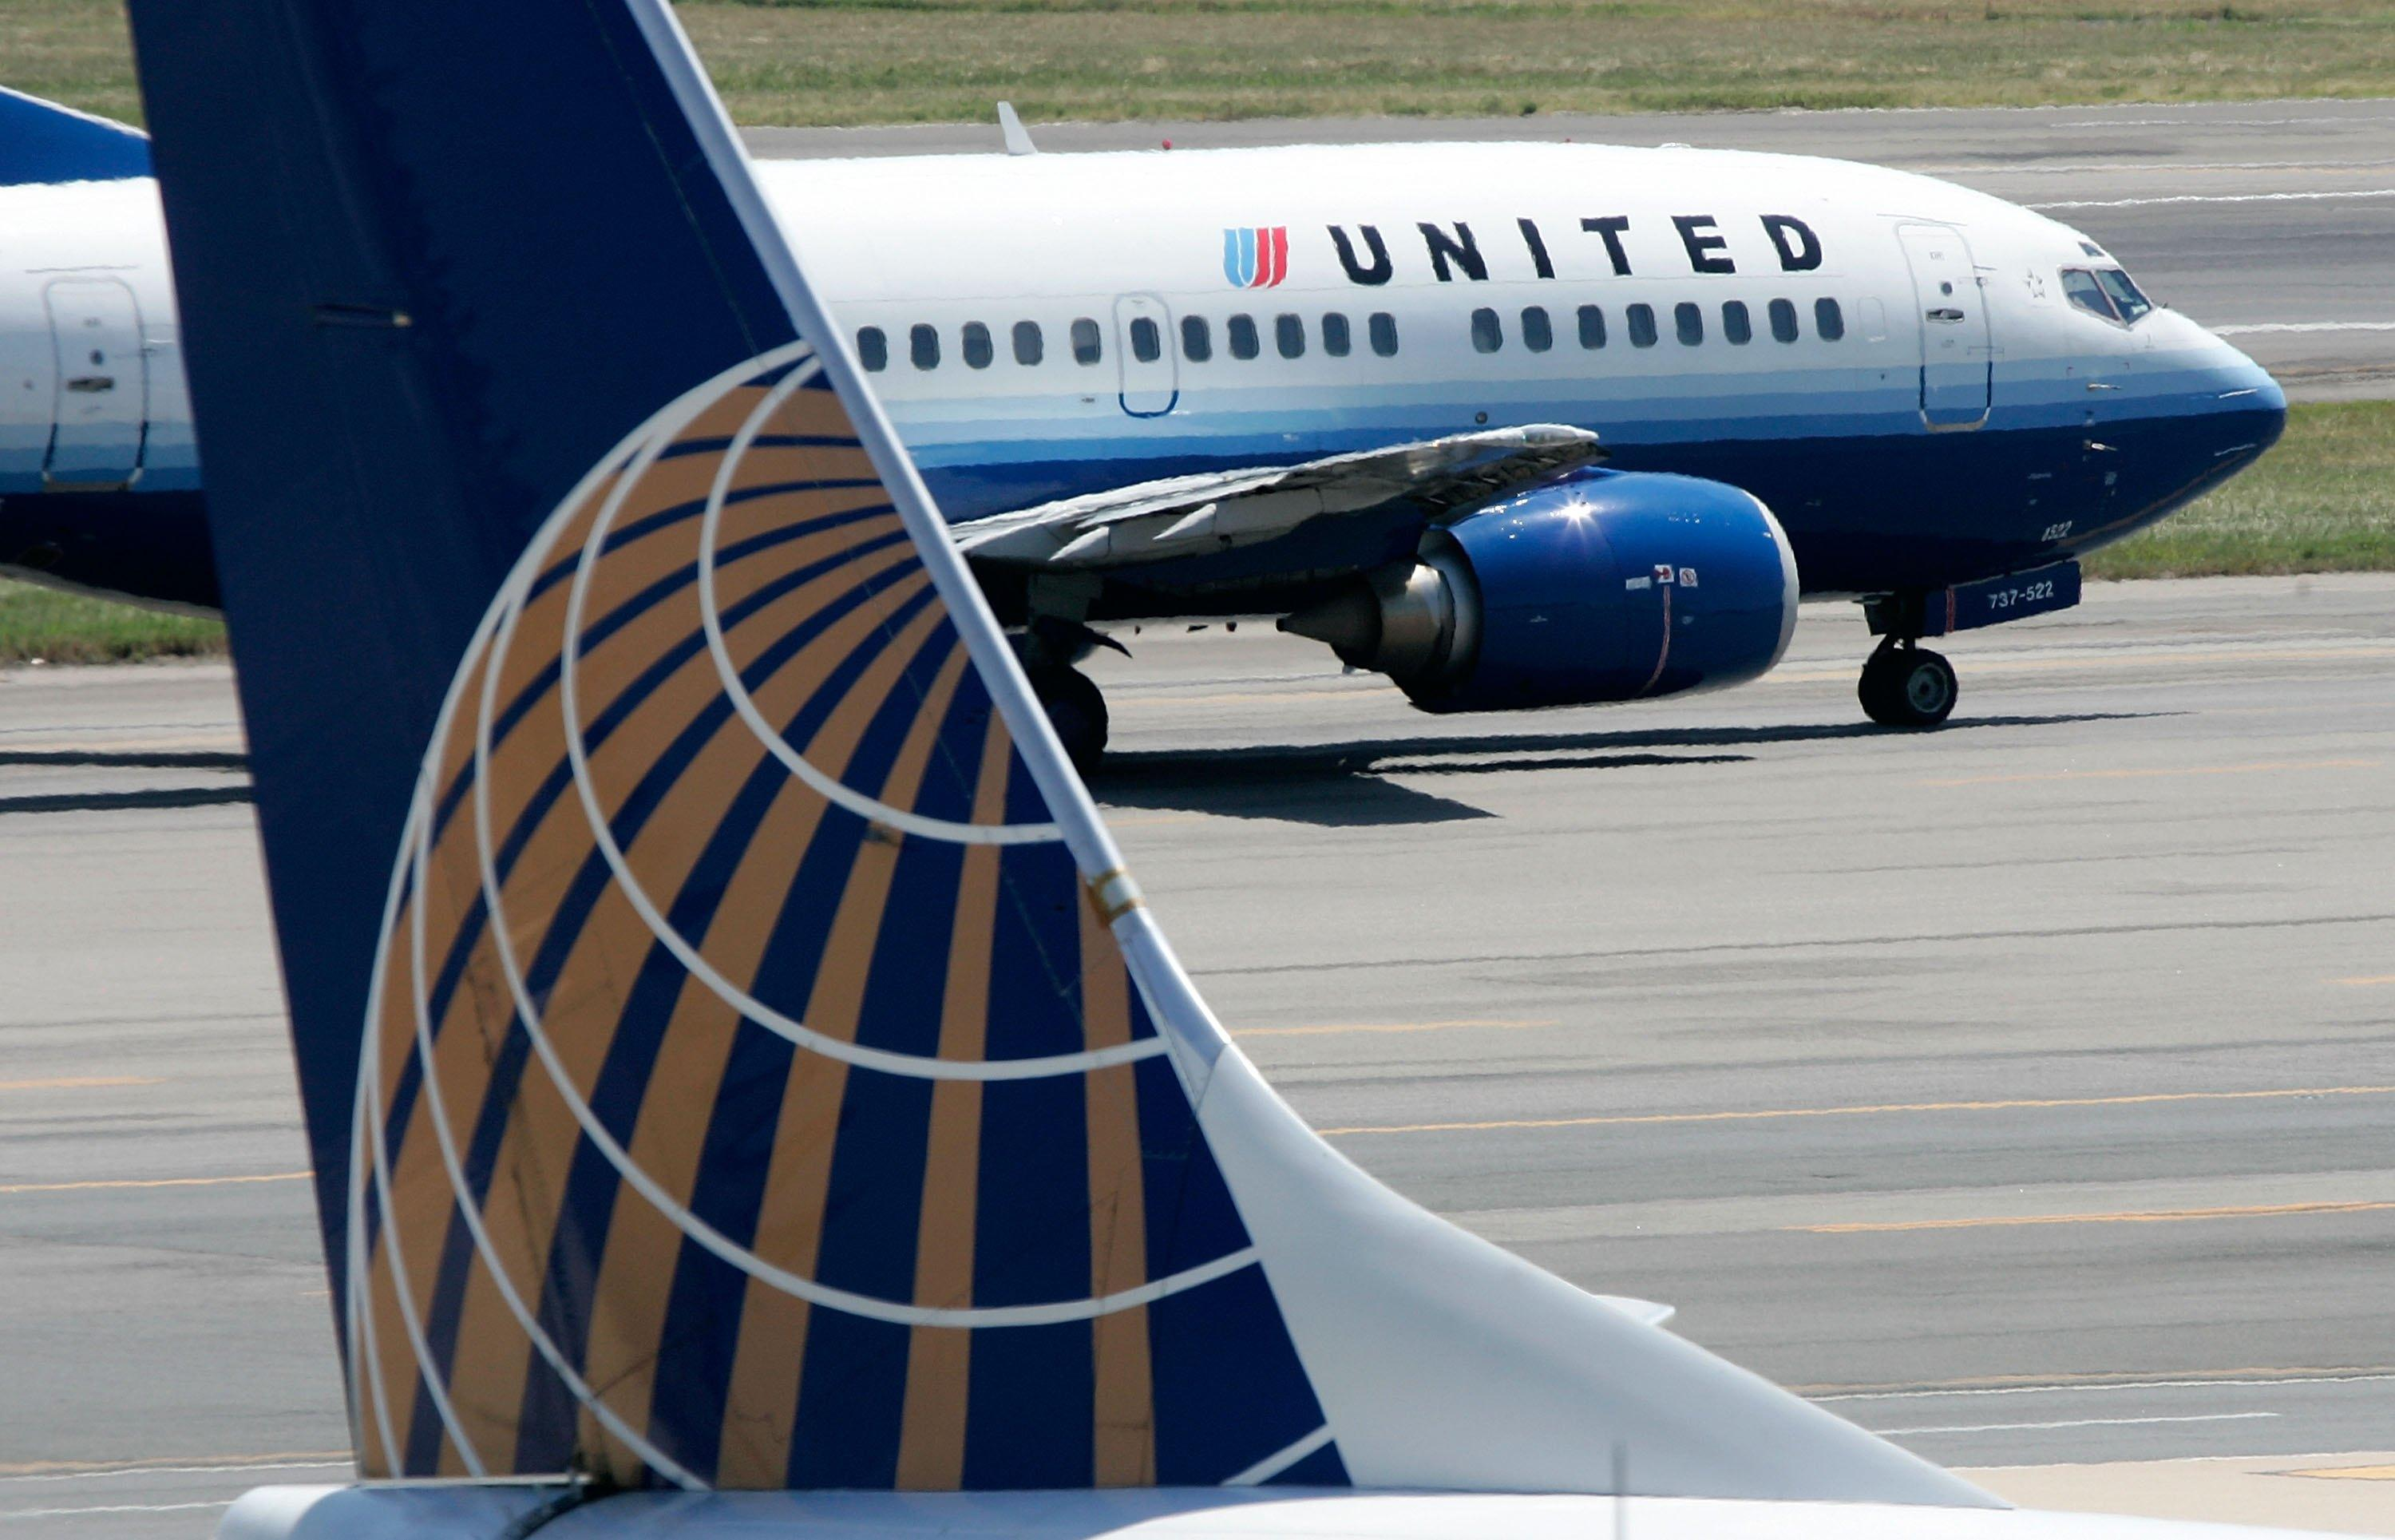 United Airlines passengers say flight attendant appeared drunk on plane